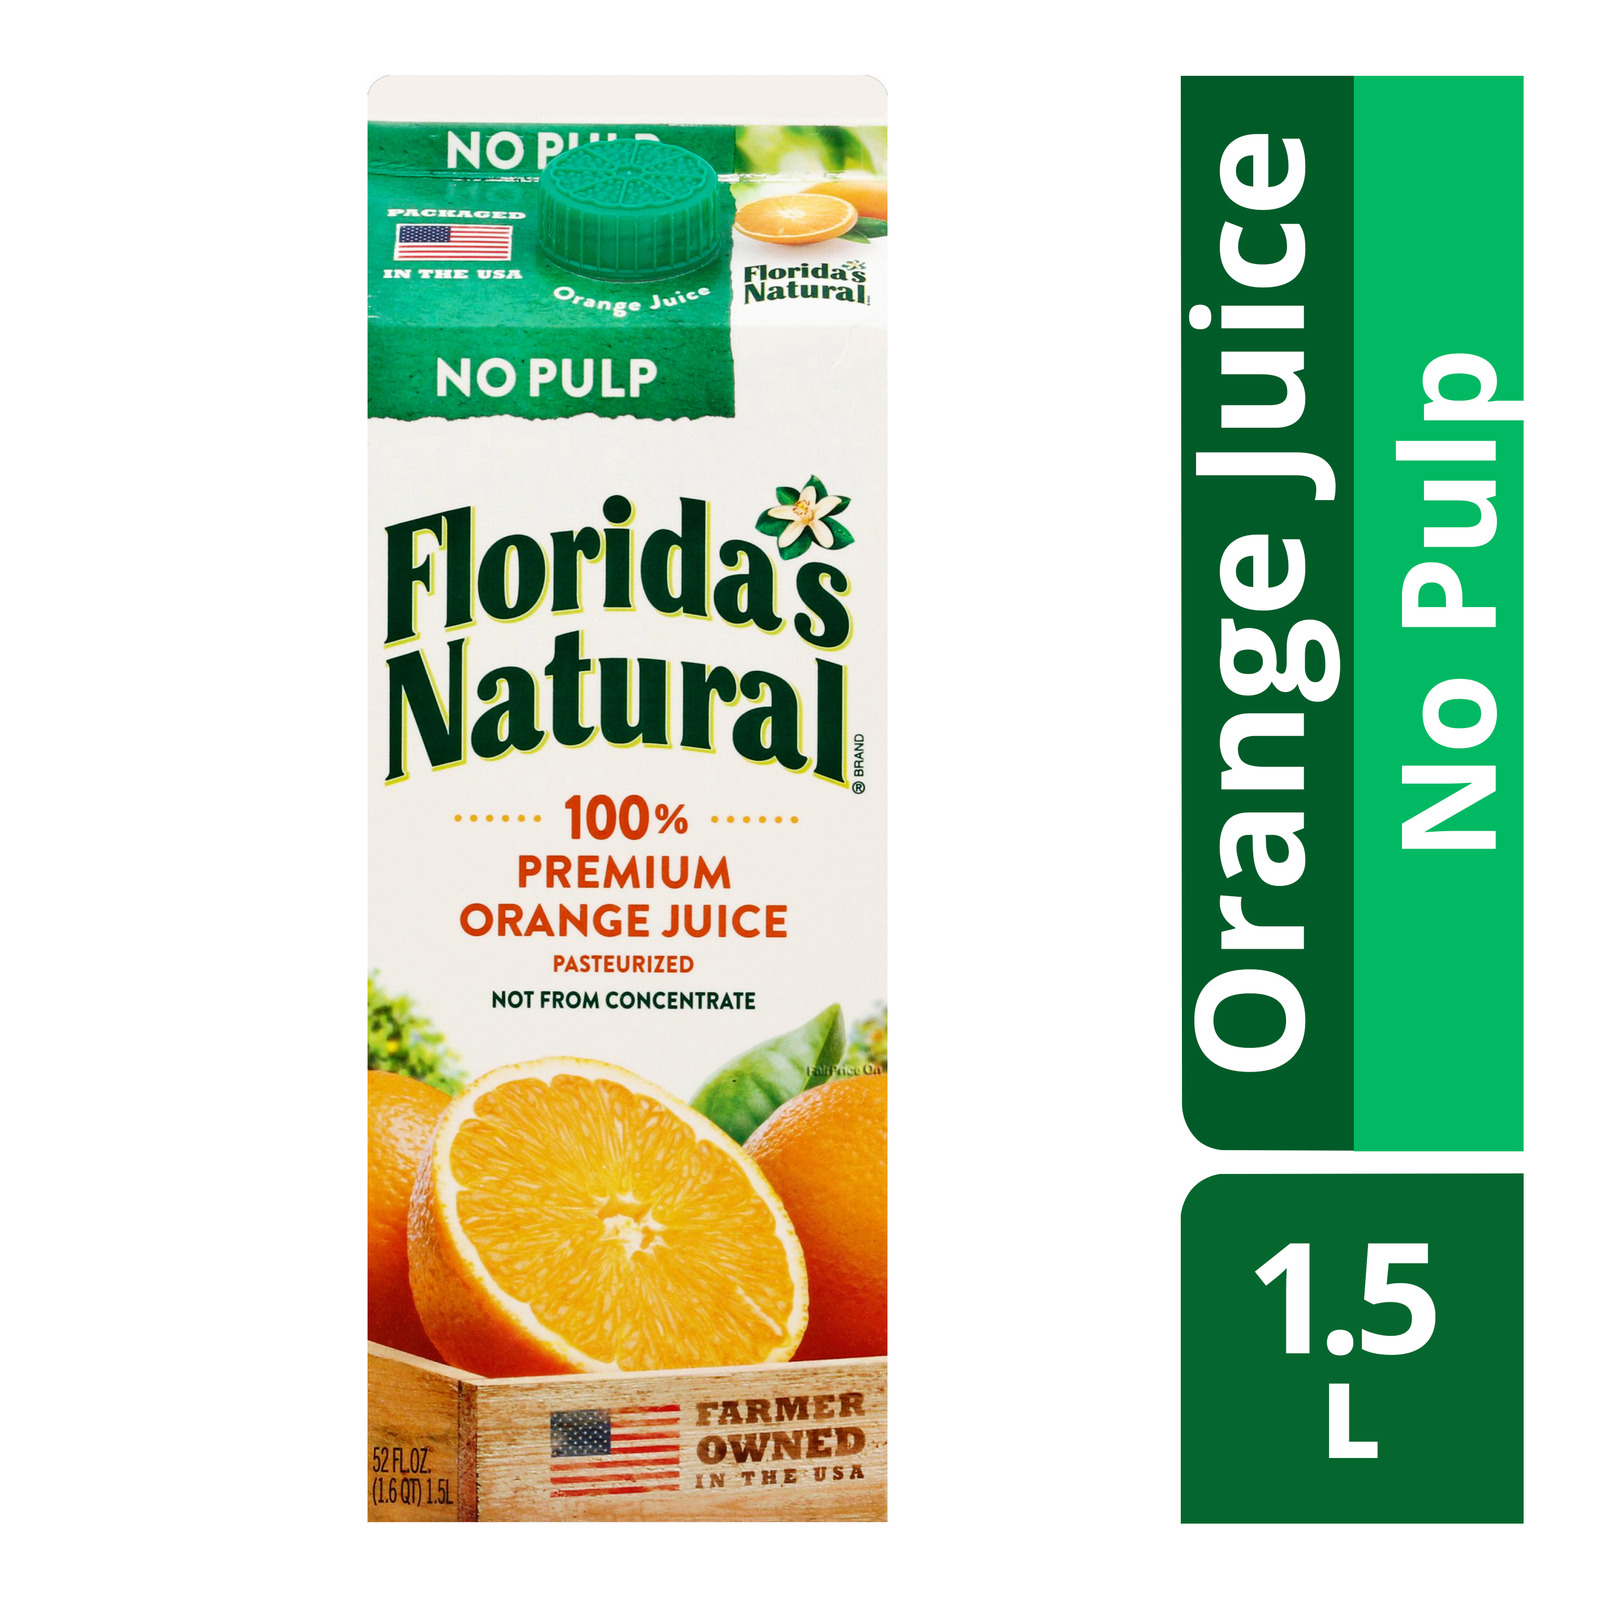 Florida's Natural 100% Orange Juice - No Pulp